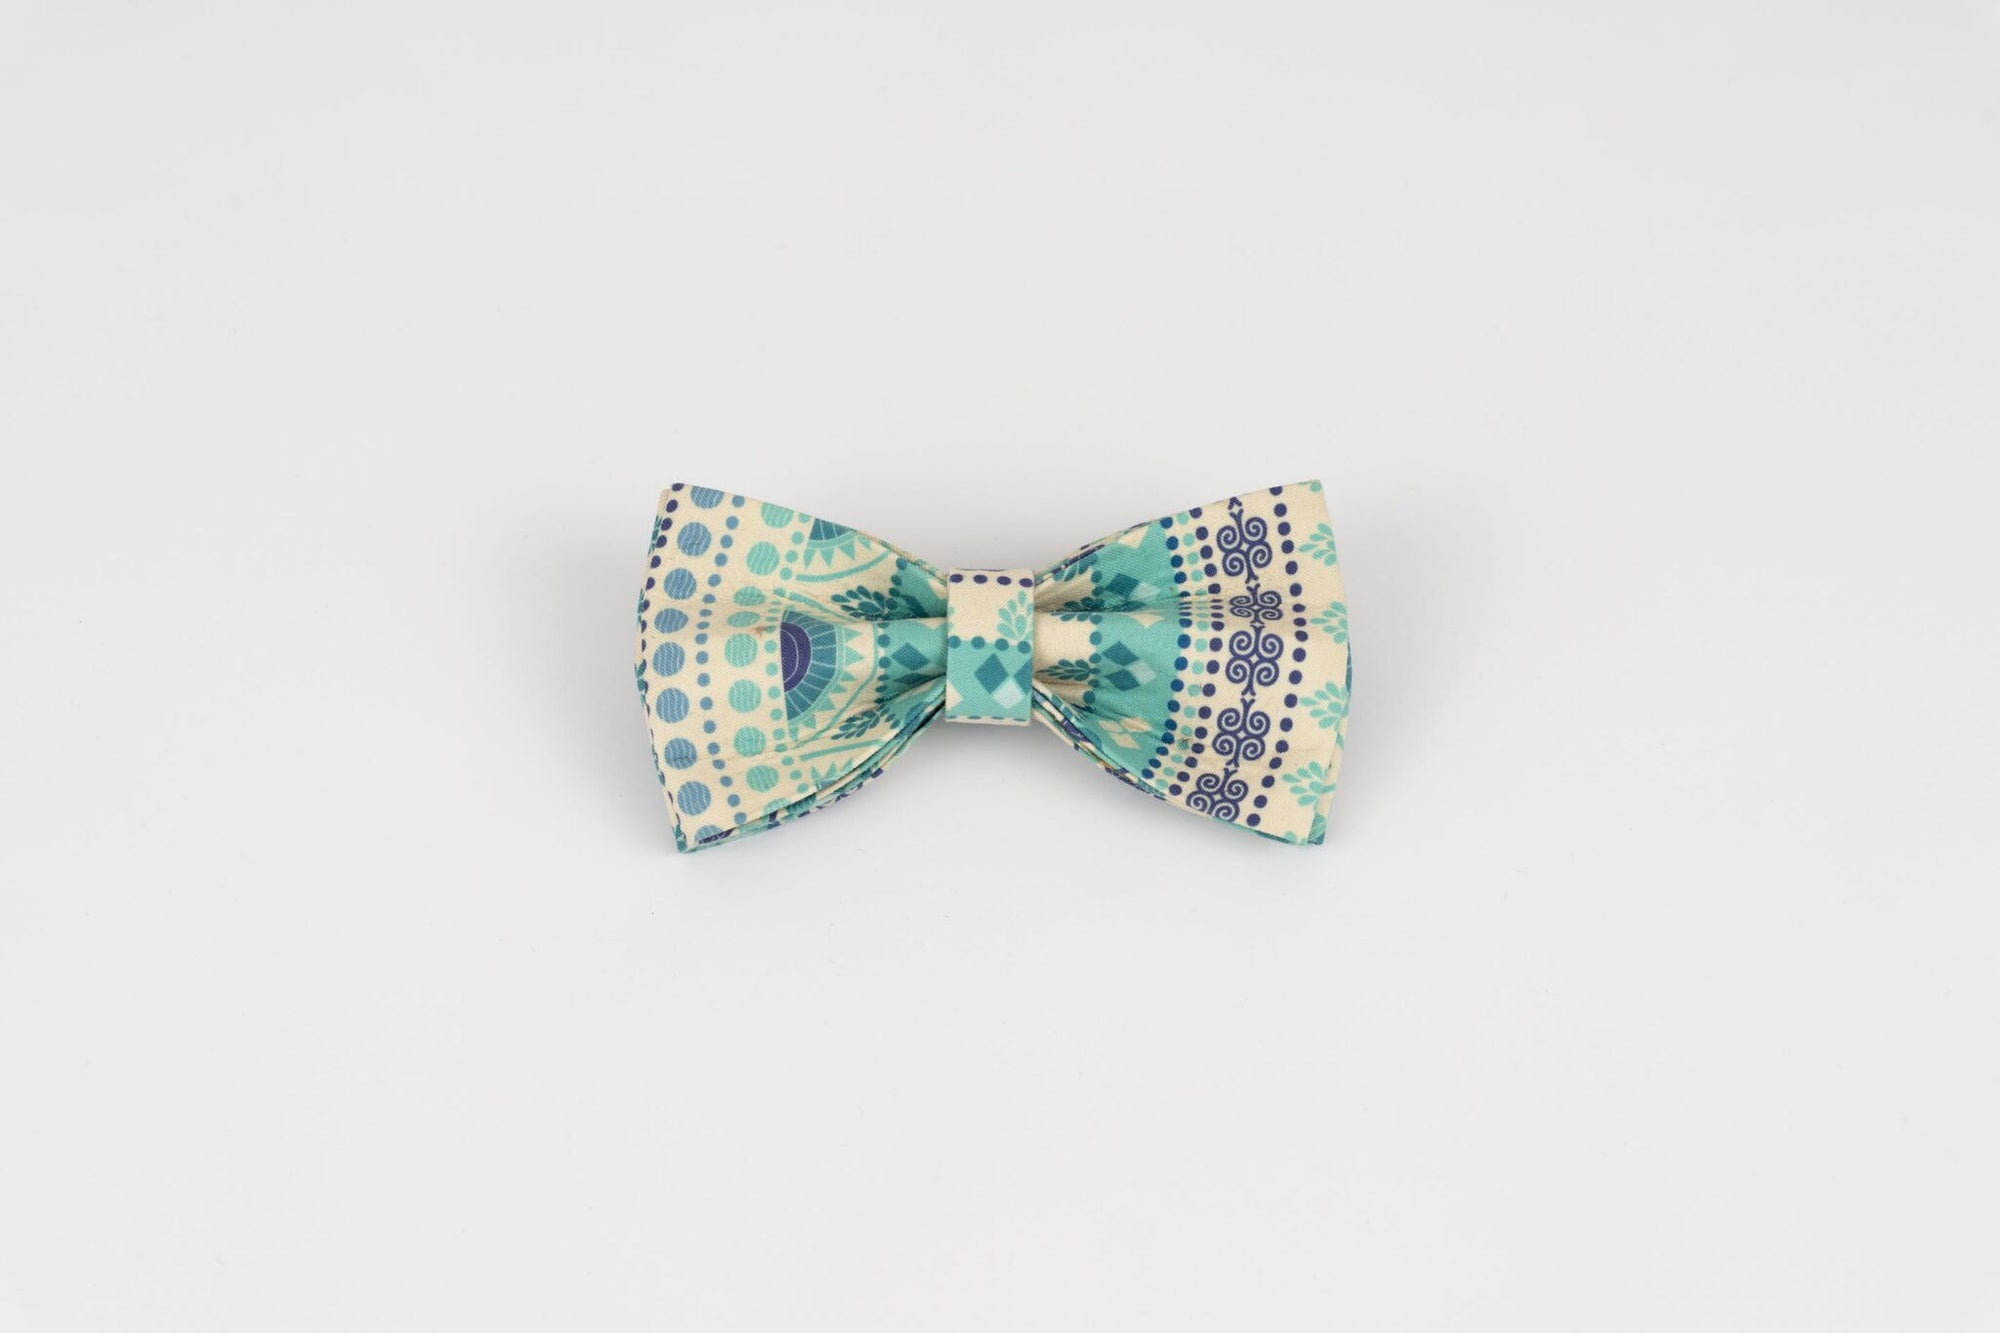 Marakesh Dog Bow Tie